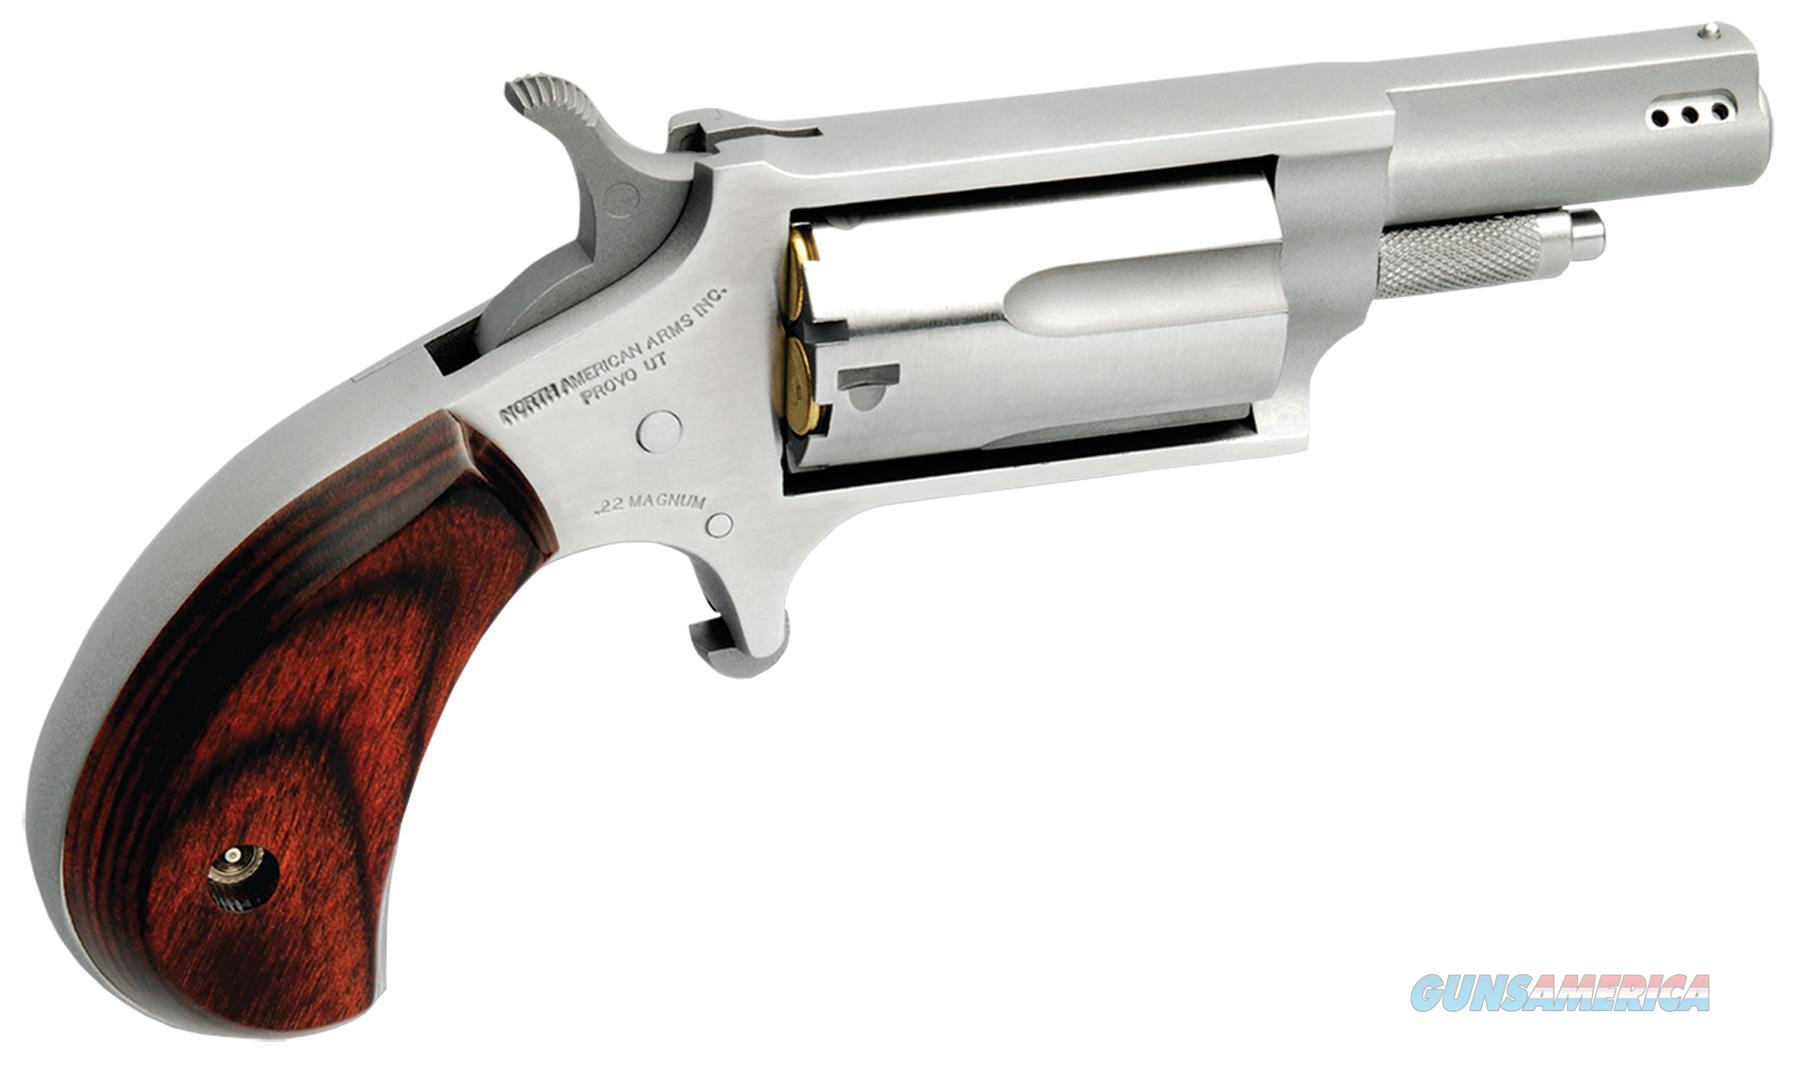 """Naa Naa22mp 22 Magnum Ported Single 22 Winchester Magnum Rimfire (Wmr) 1.6"""" 5 Rosewood Stainless NAA-22M-P  Guns > Pistols > North American Arms Pistols"""